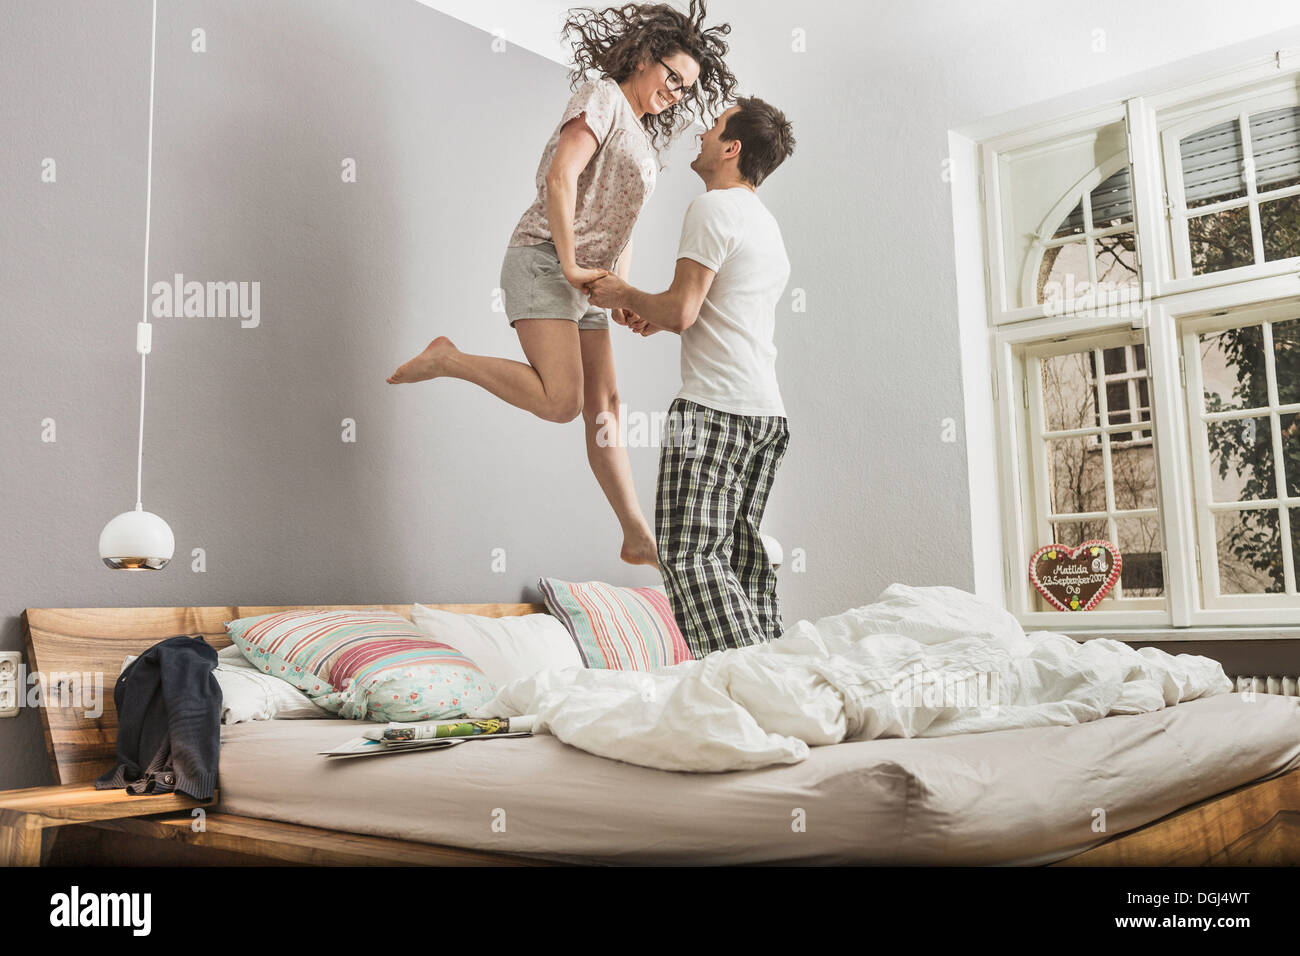 Mid adult couple wearing pyjamas jumping on bed - Stock Image